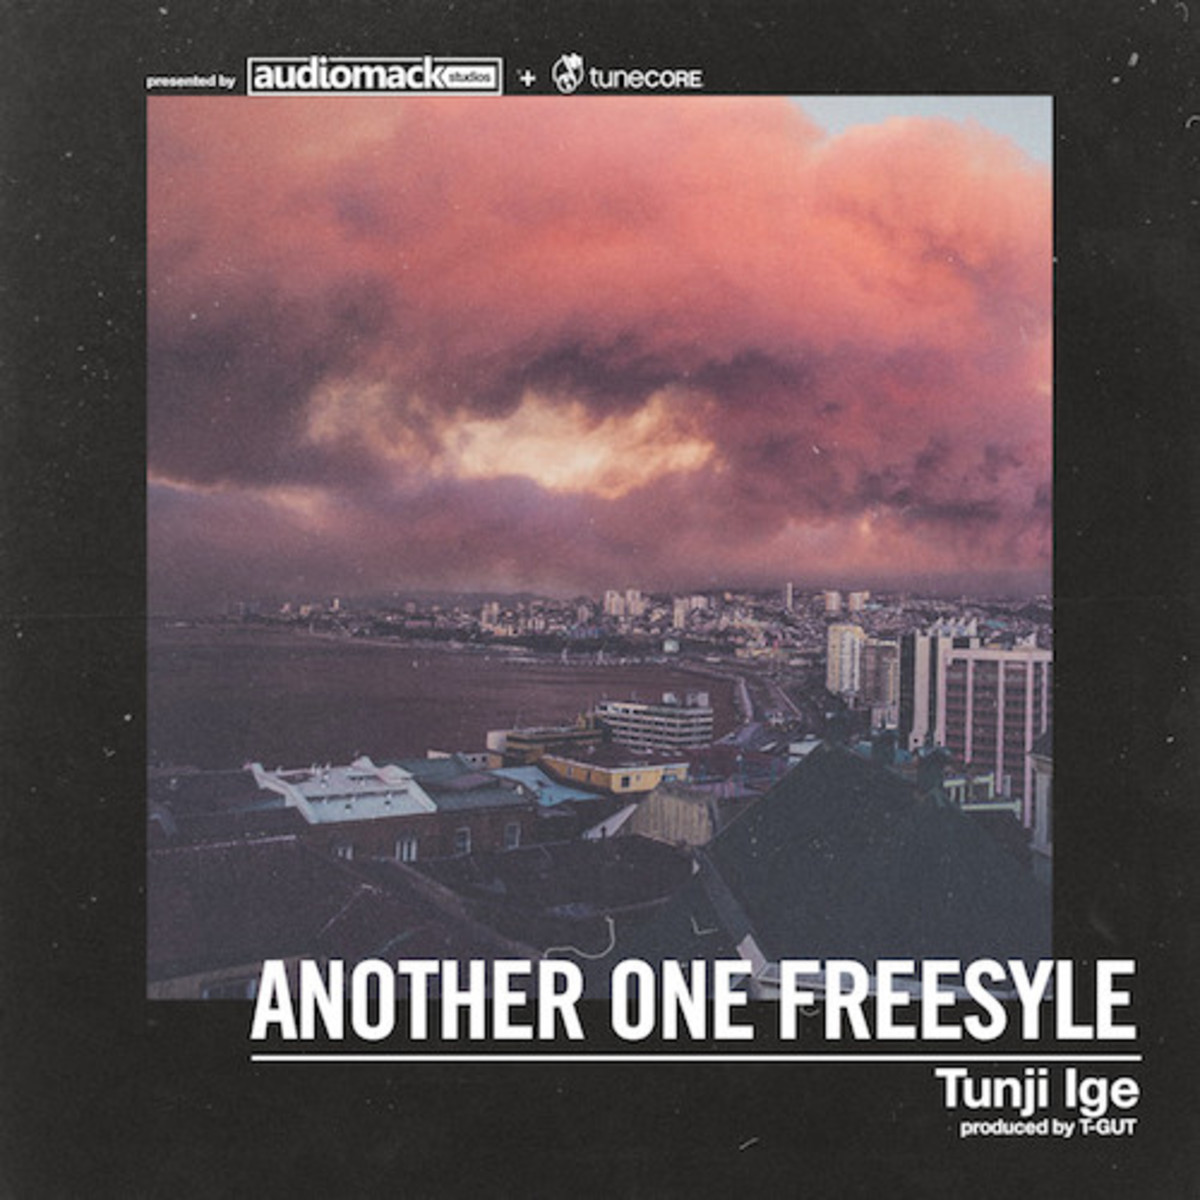 tunji-ige-another-one-freestyle.jpg